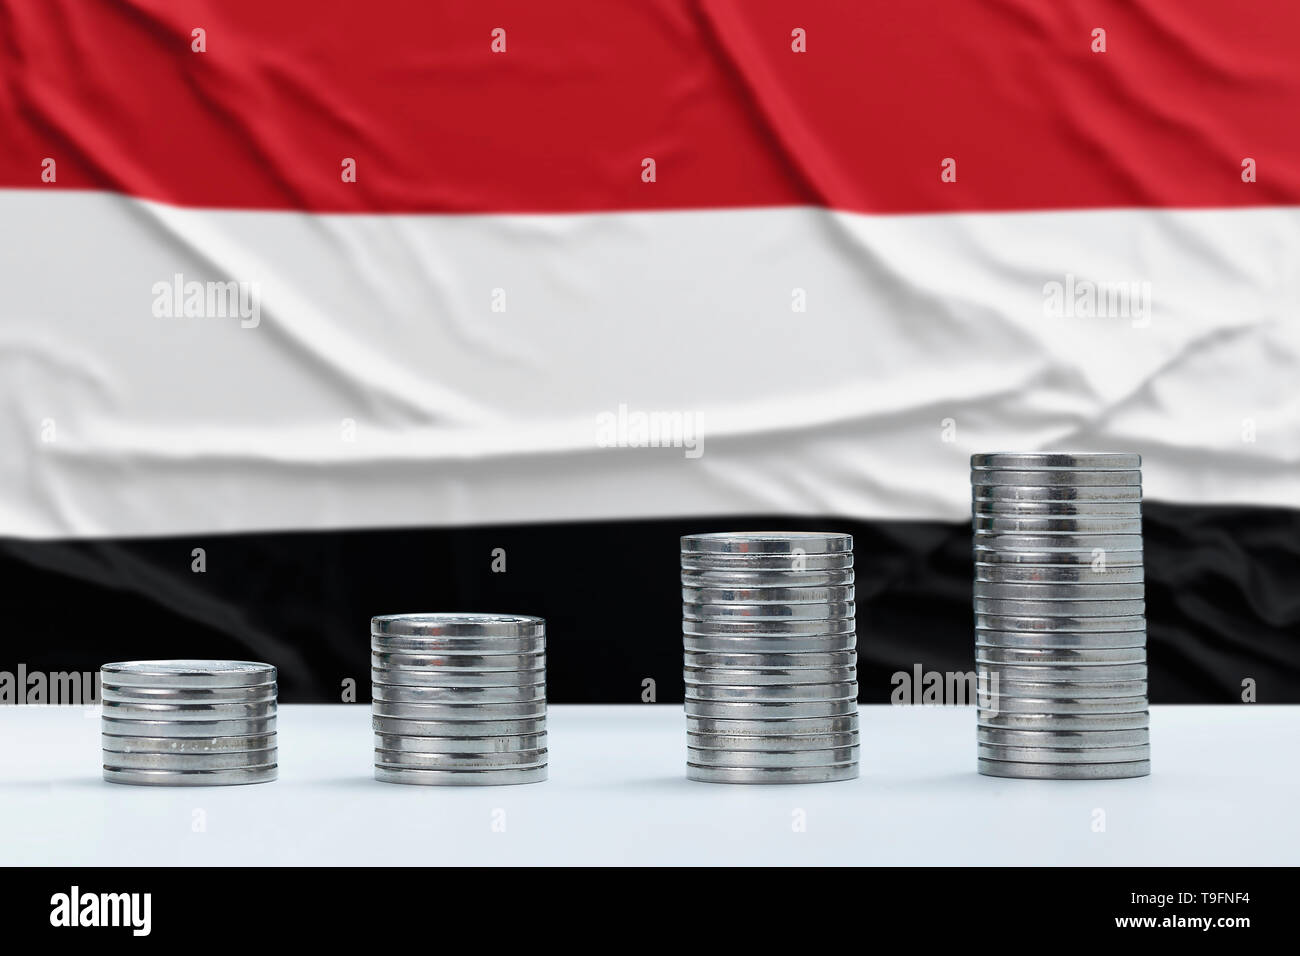 Wrinkled Yemen flag in the background with rows of coins for finance and business concept. Saving money. - Stock Image